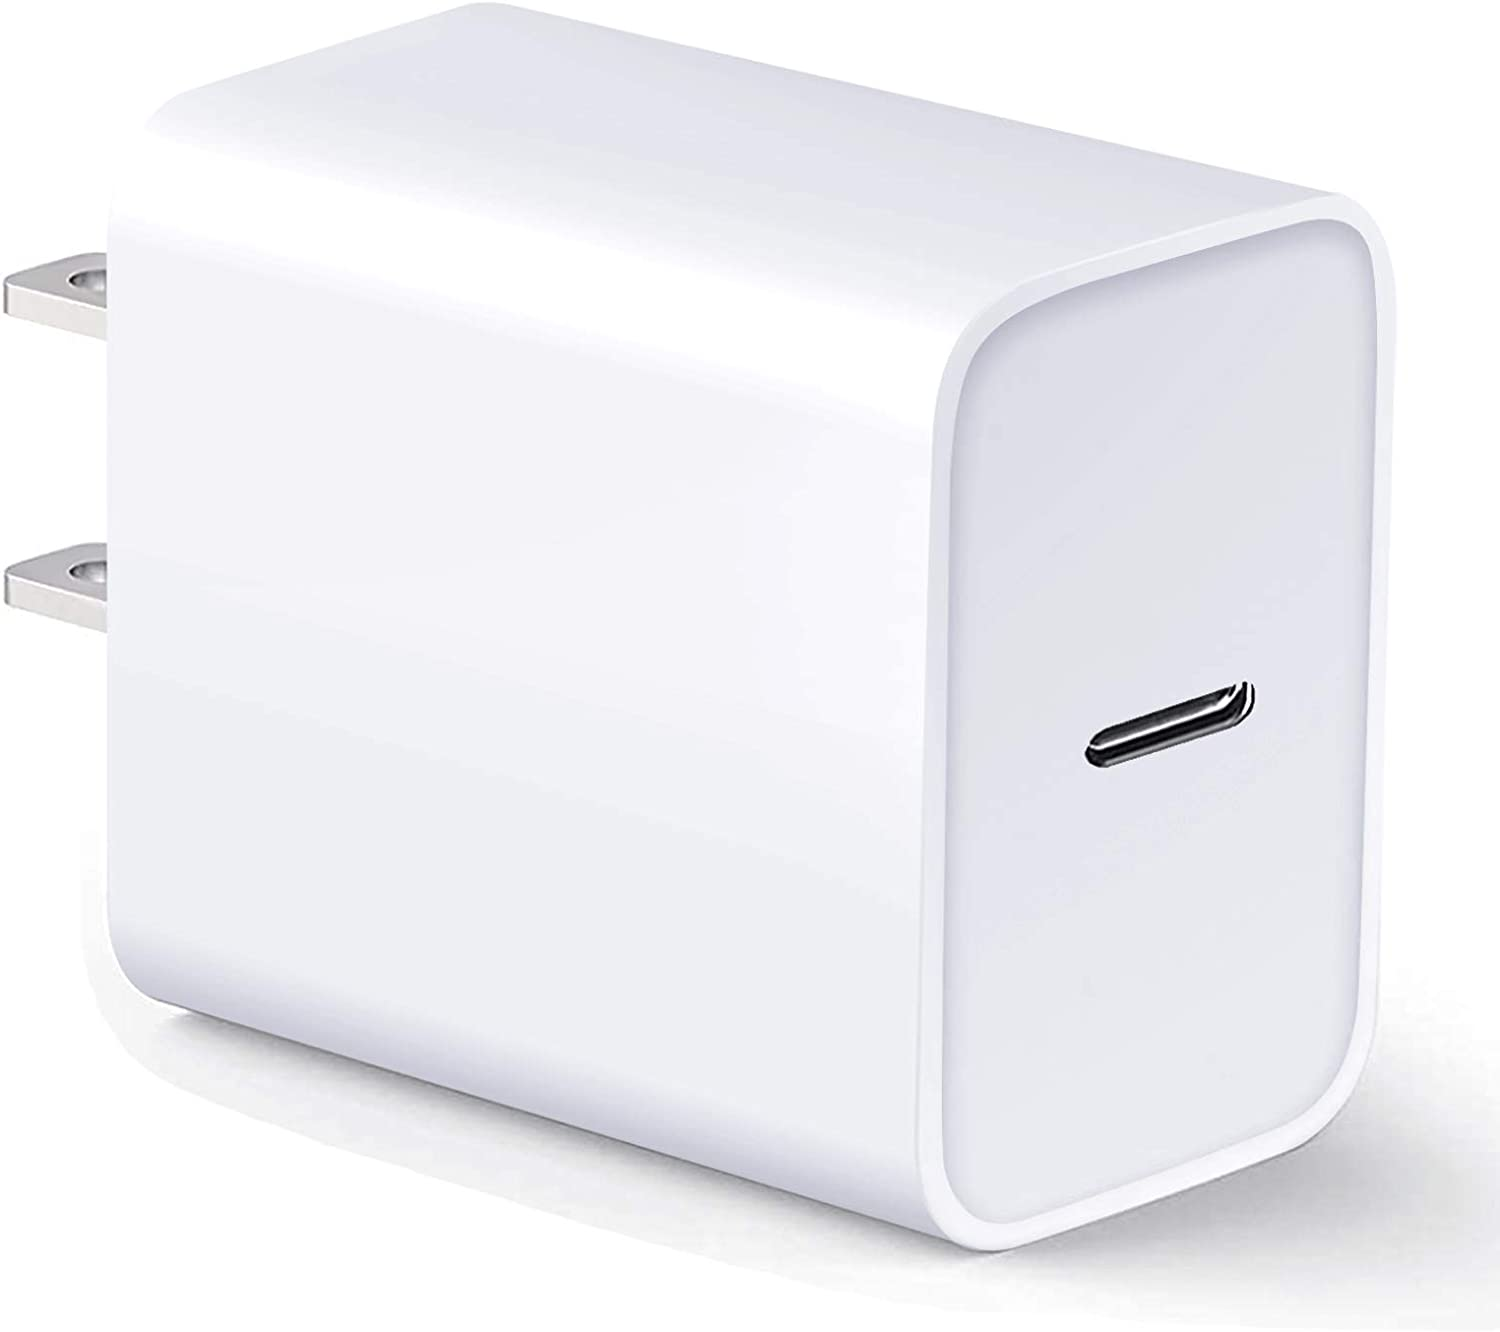 USB C Wall Charger 18W PD Power Adapter,Fast Charging Block Compatible with iPhone 12 11 Pro Max Xs XR X 8 Plus AirPods Pro and More